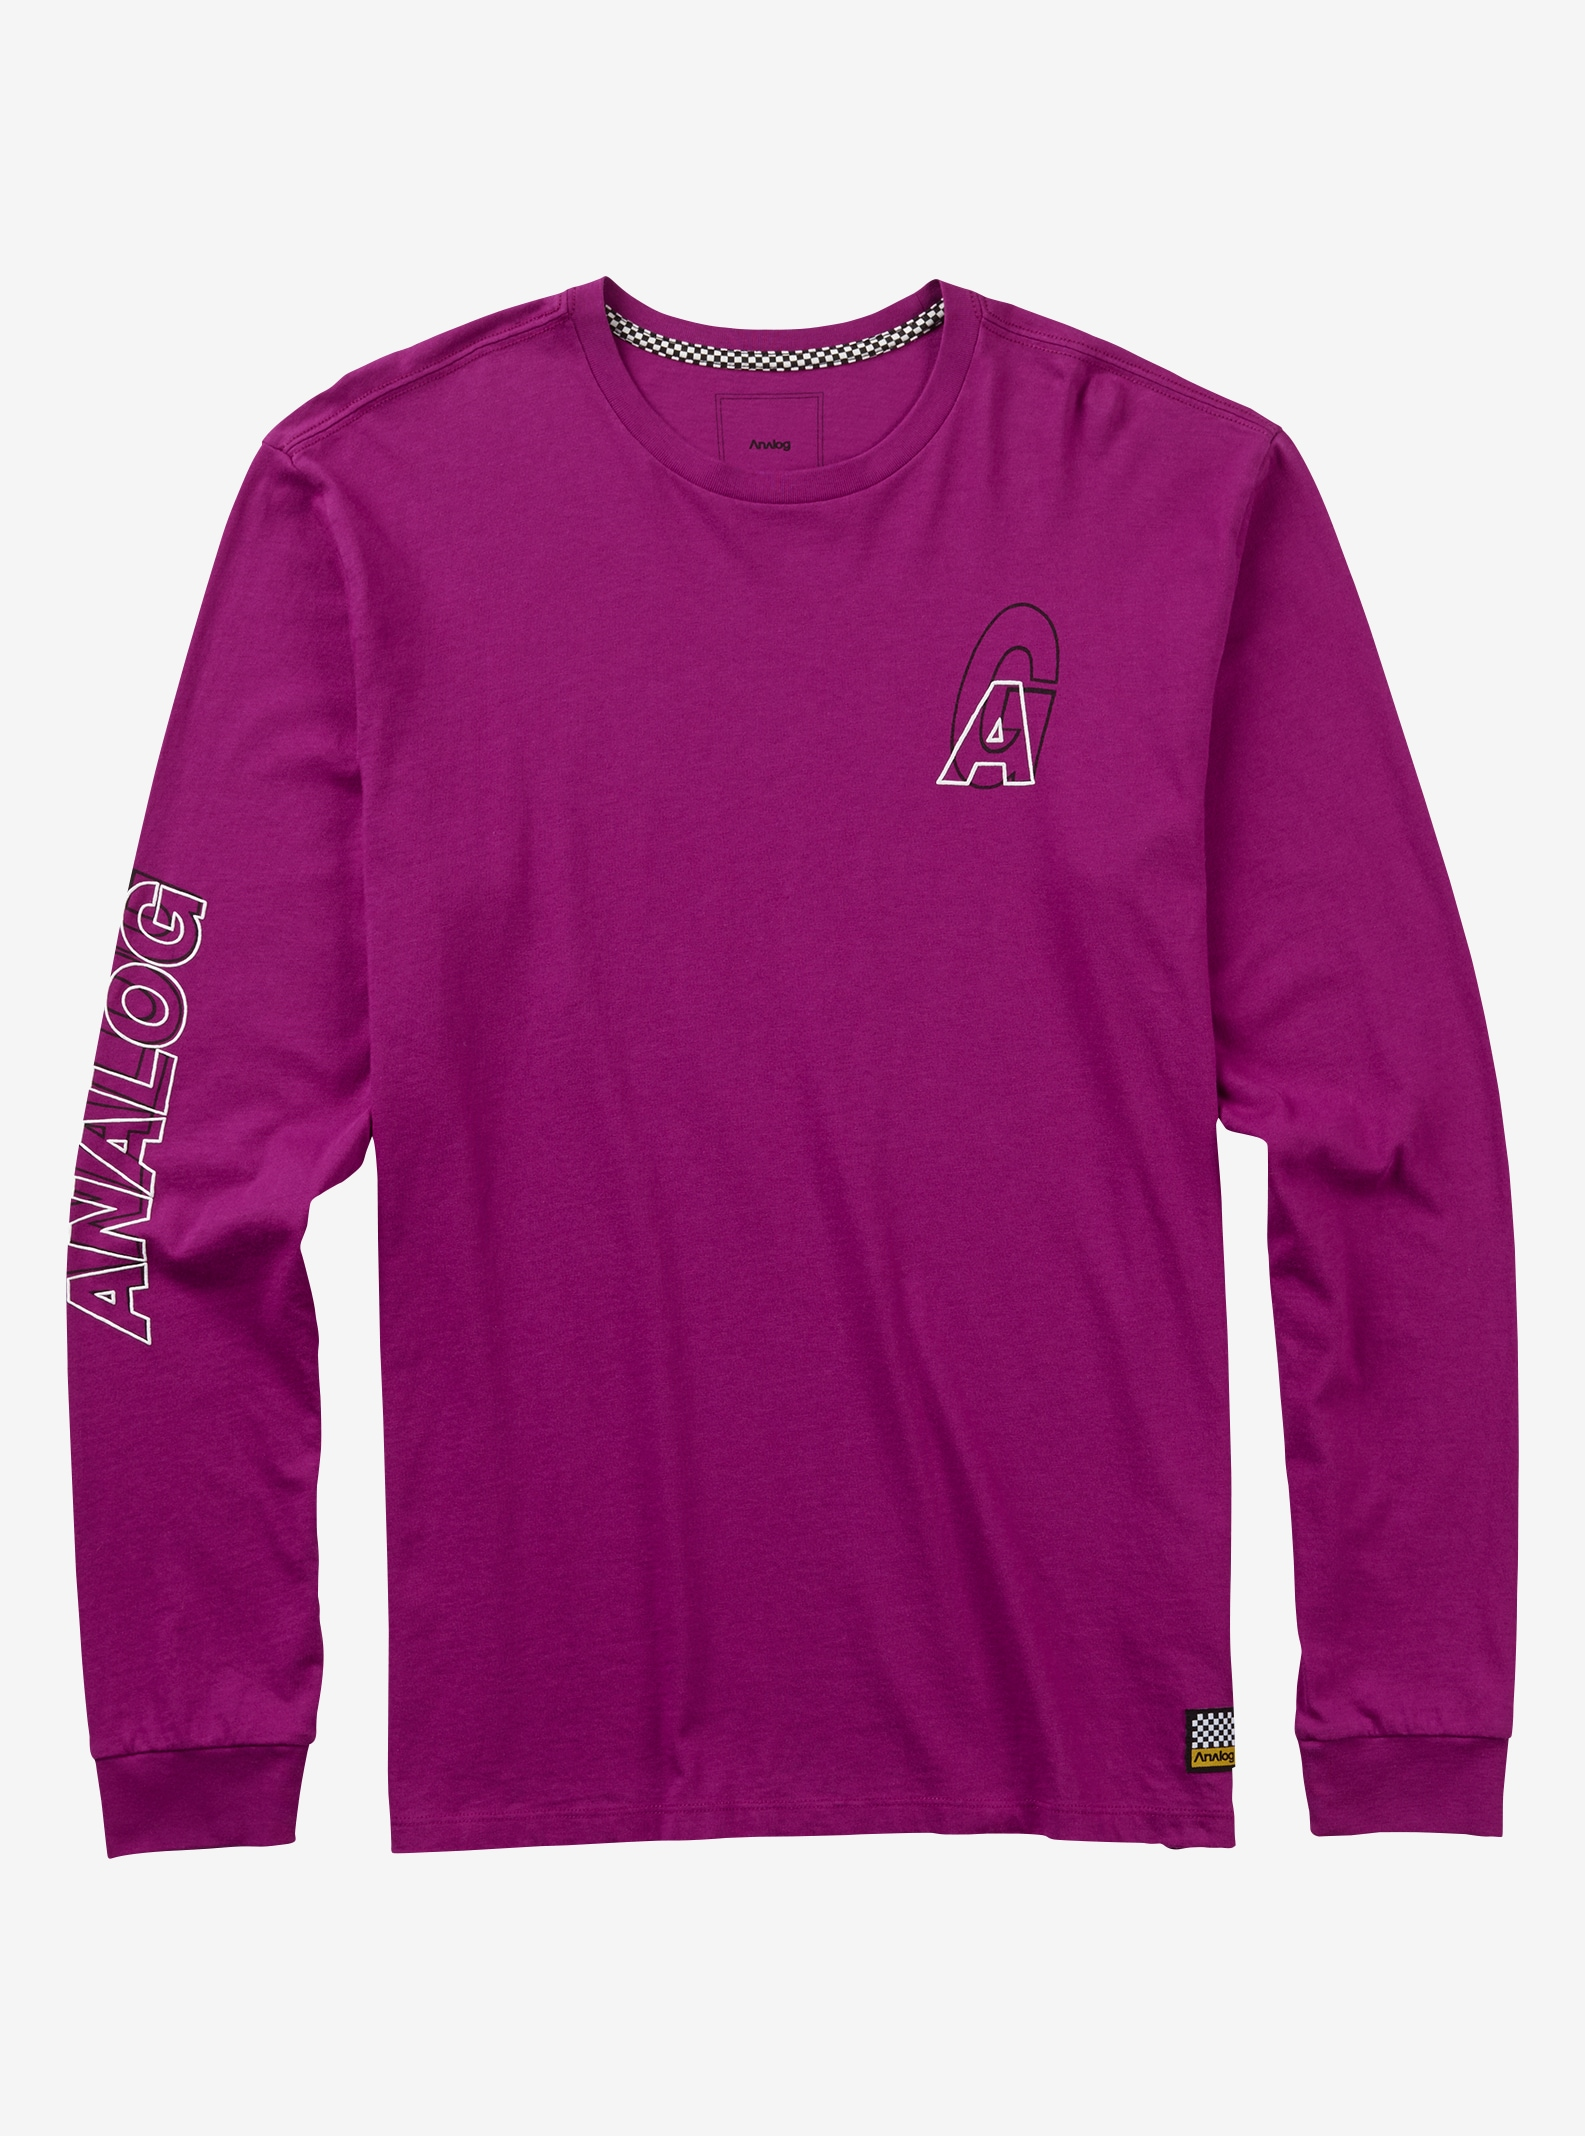 Men's Analog Baltic Long Sleeve T Shirt shown in Grapeseed